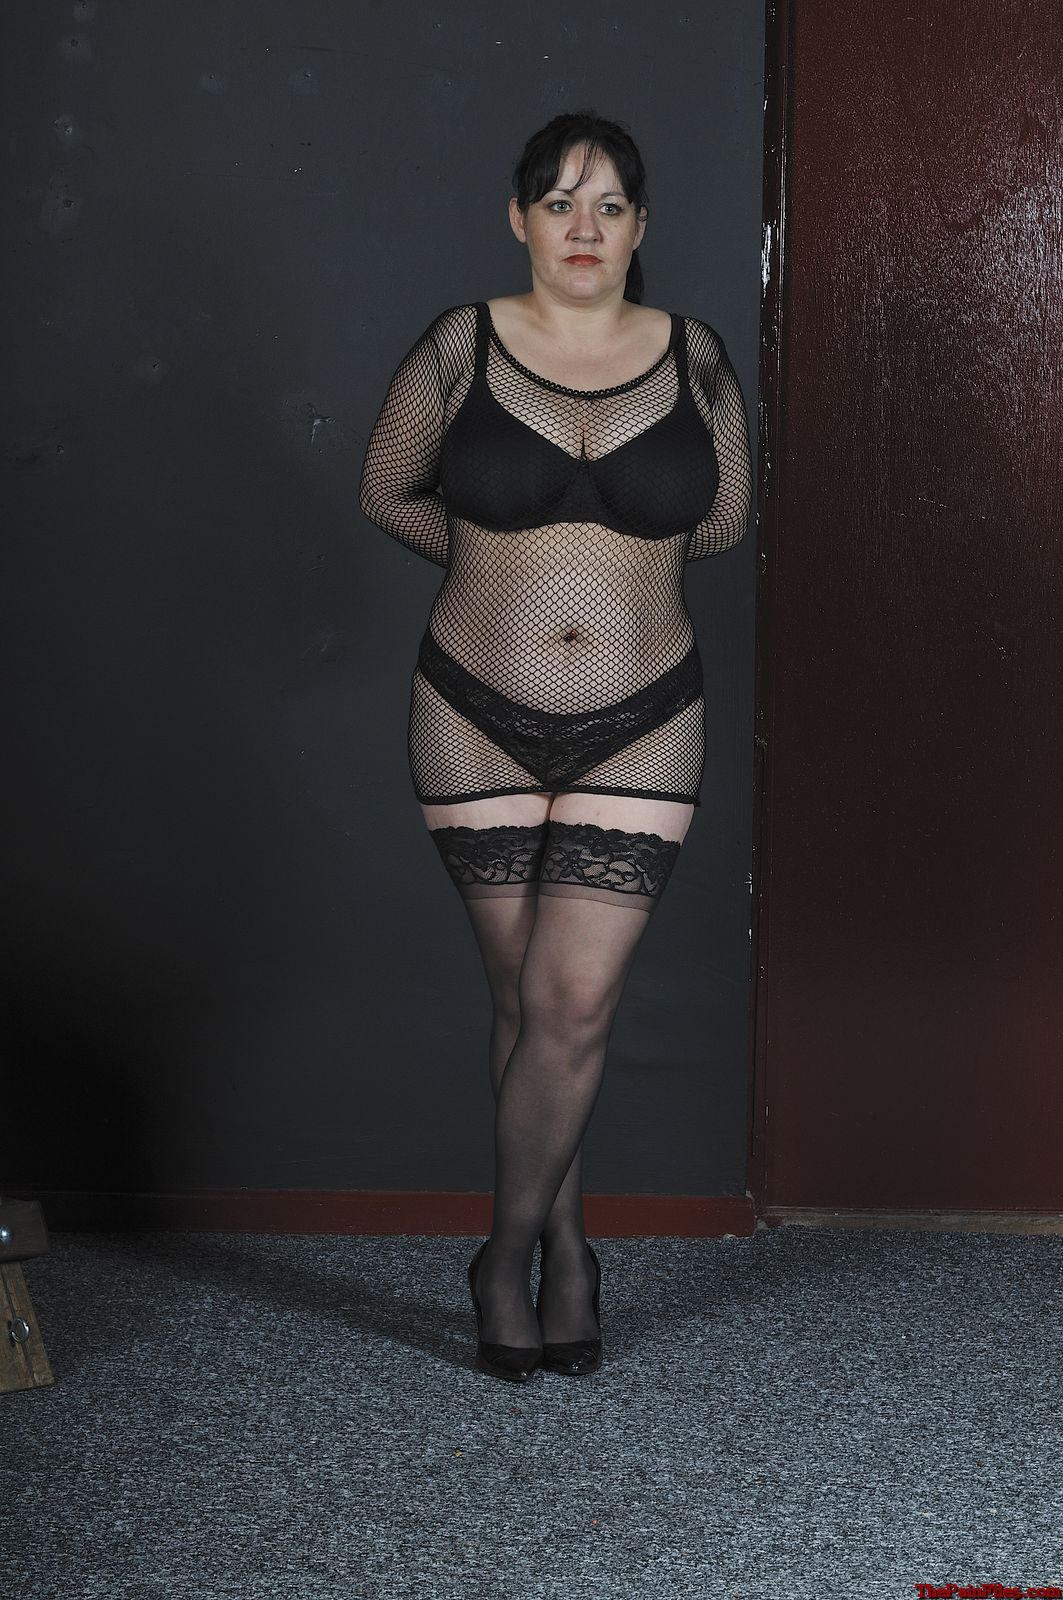 Amateur slave emmas electro bdsm and humiliation of bbw submissive in cruel 8